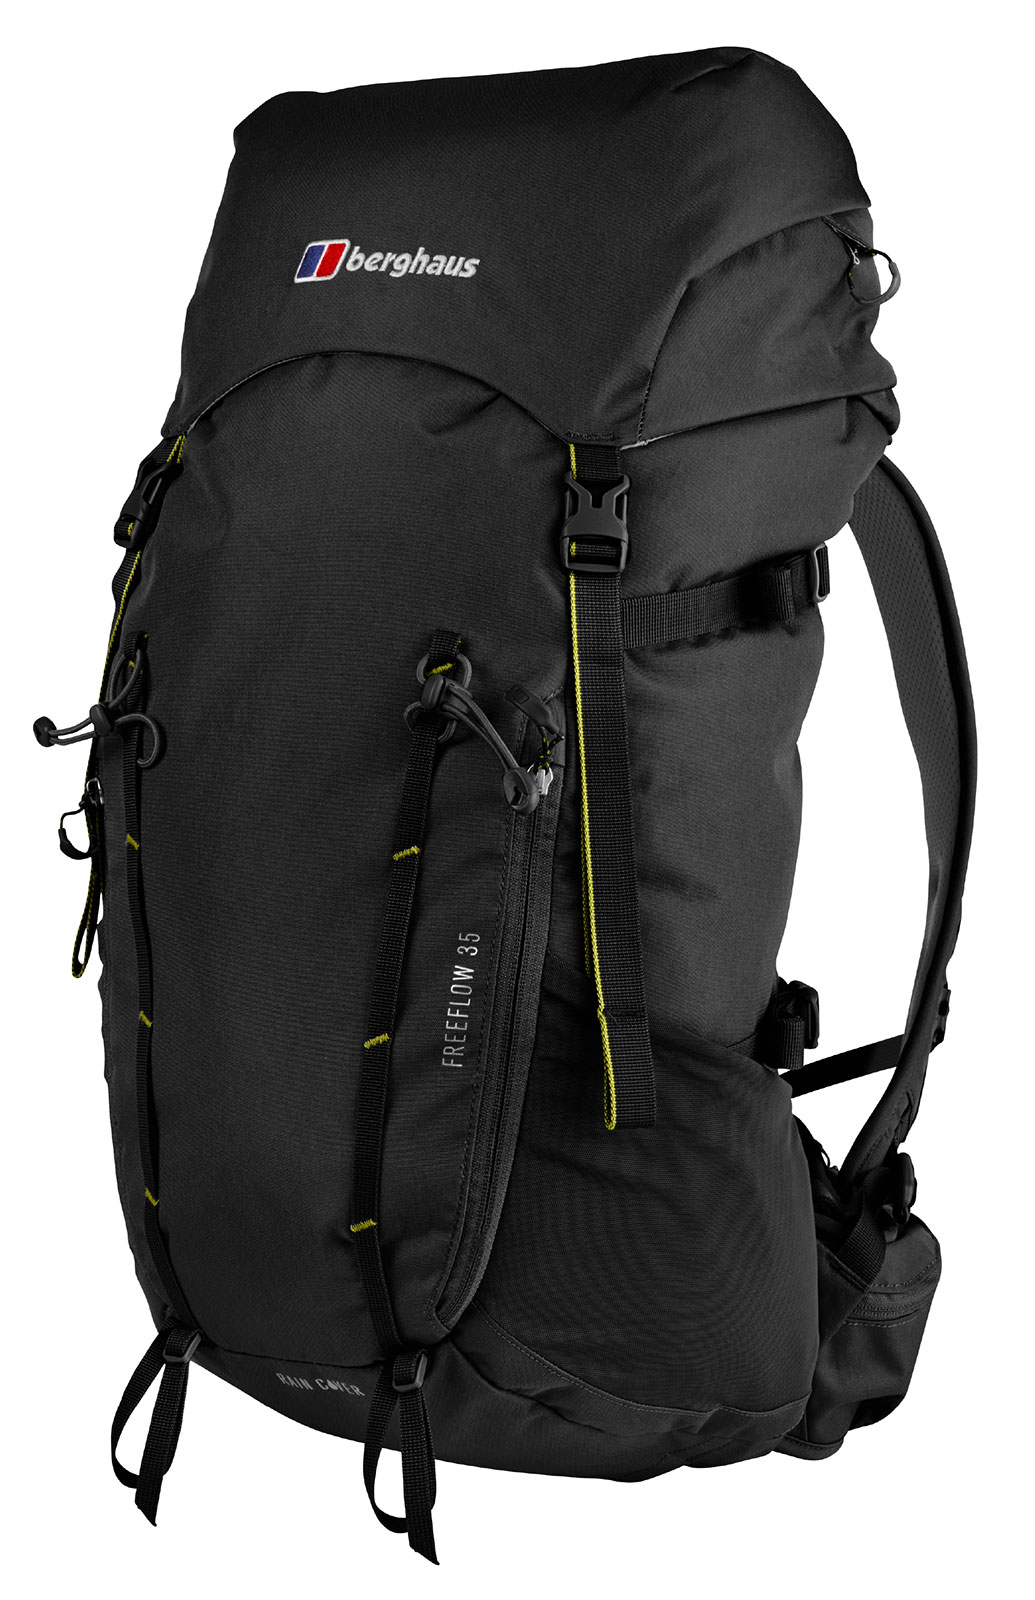 35l Rucksack Berghaus Freeflow 35l Hiking Backpack